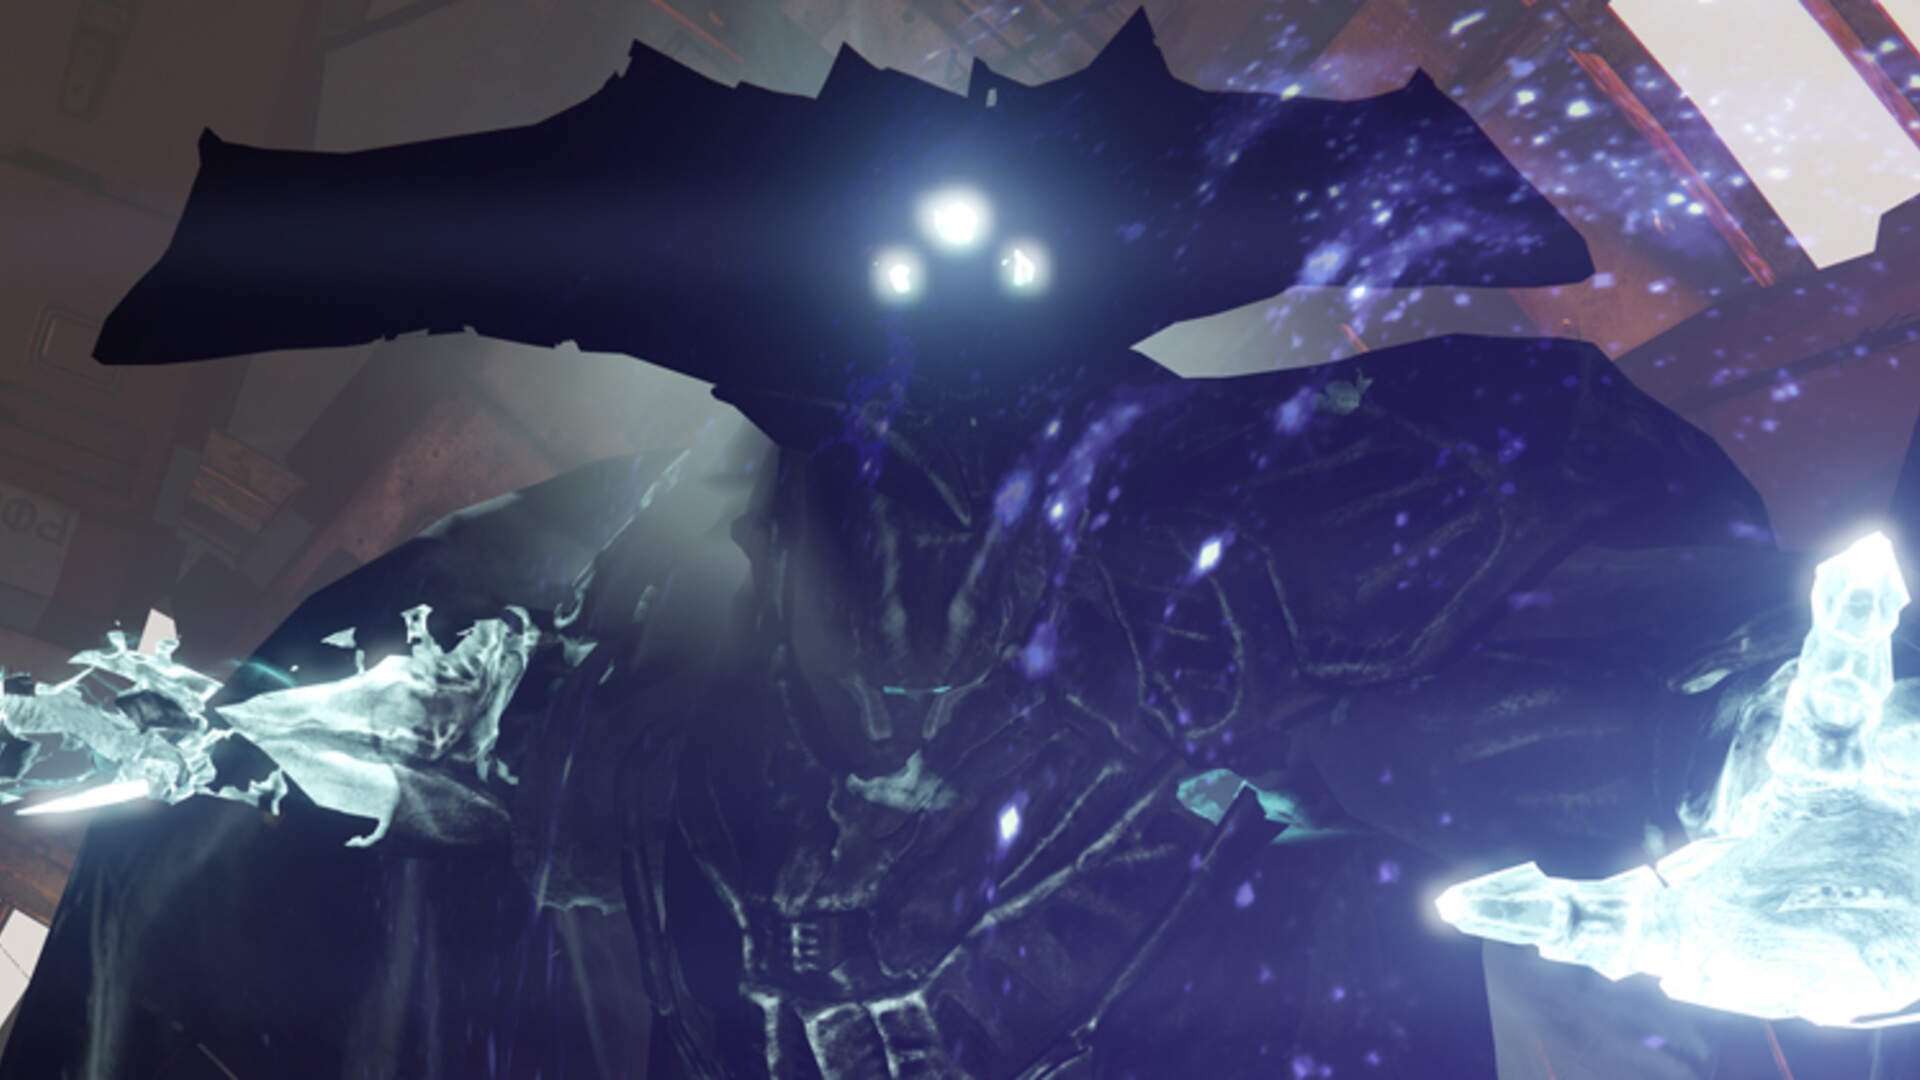 Destiny: The Taken King - Find Oryx's Basketball Court